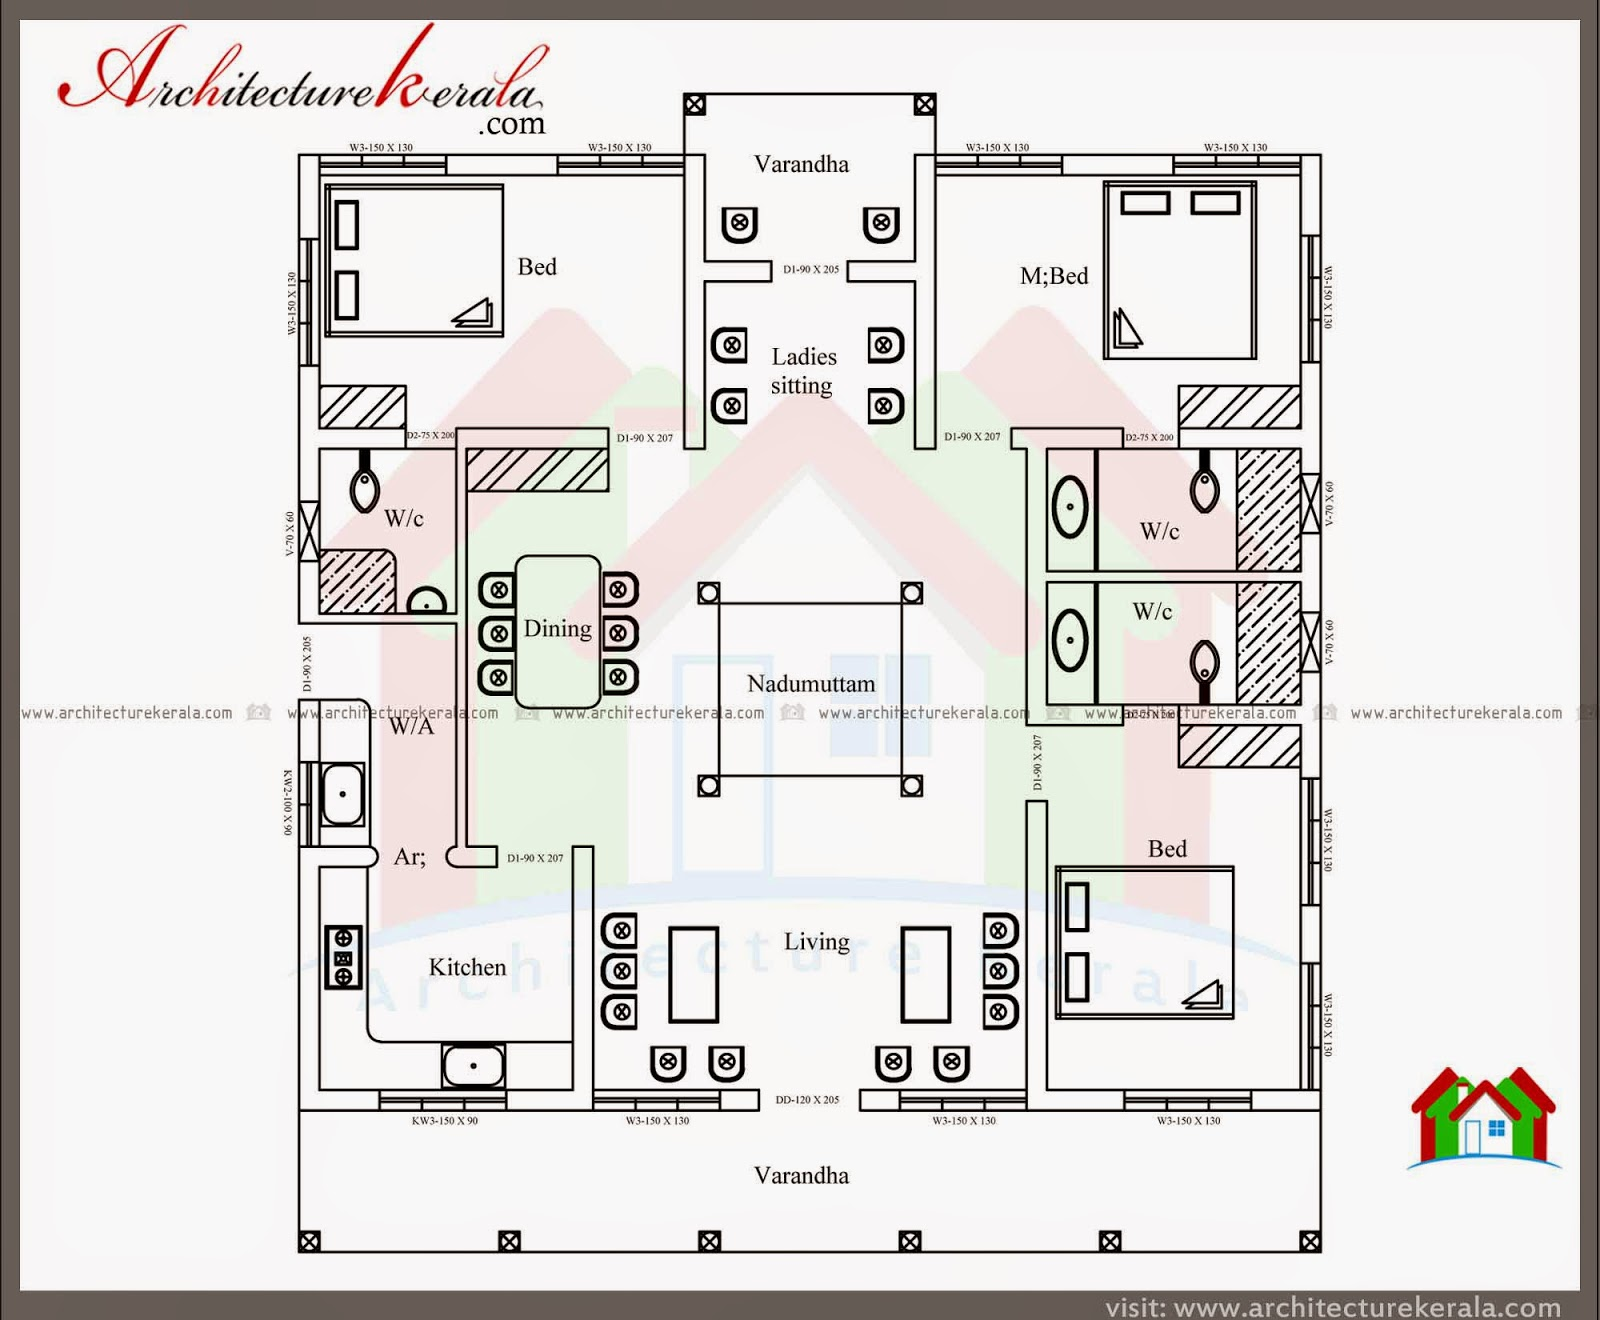 architecture%2Bkerala%2Bplan%2B262  Bedroom Floor Plans For Homes Sq Ft on 1700 colonial log homes, 3 bedroom floor plans for homes, 2 story floor plans for homes, 1700 square foot country homes,